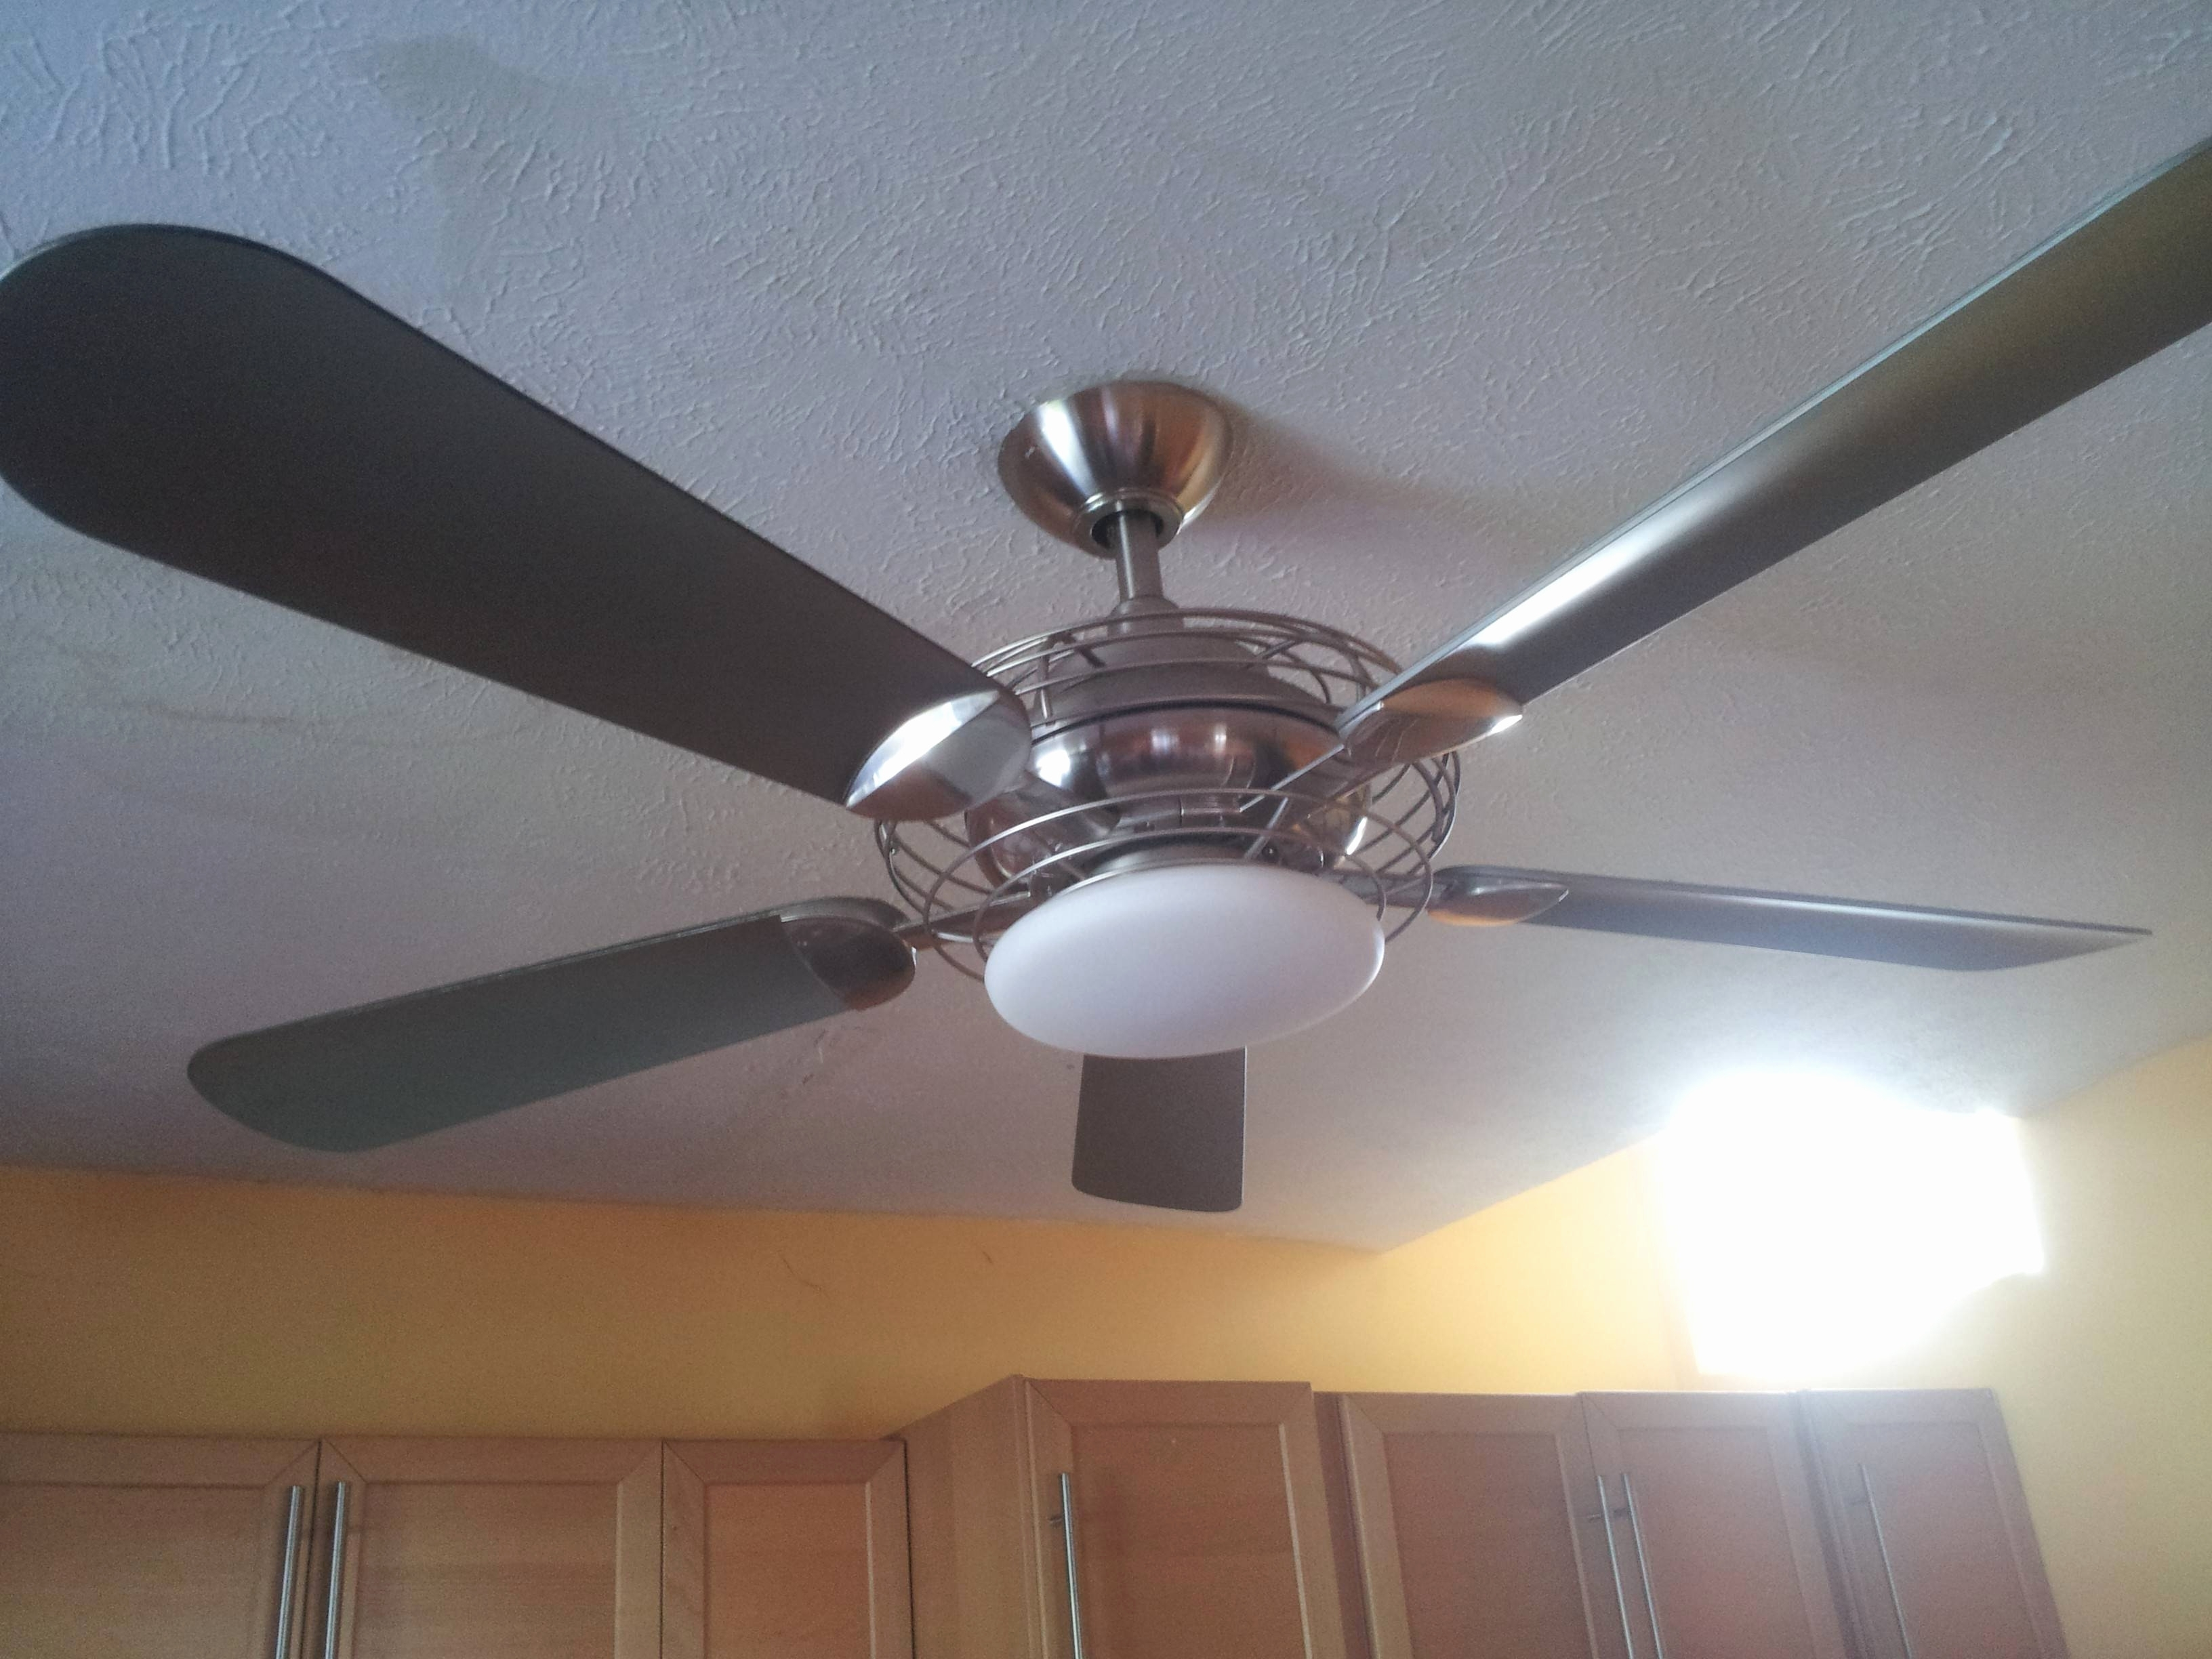 2018 36 Inch Outdoor Ceiling Fans With Light Flush Mount Throughout 36 Inch Flush Mount Ceiling Fans Lovely Archive Of May 2018 Blue (View 1 of 20)